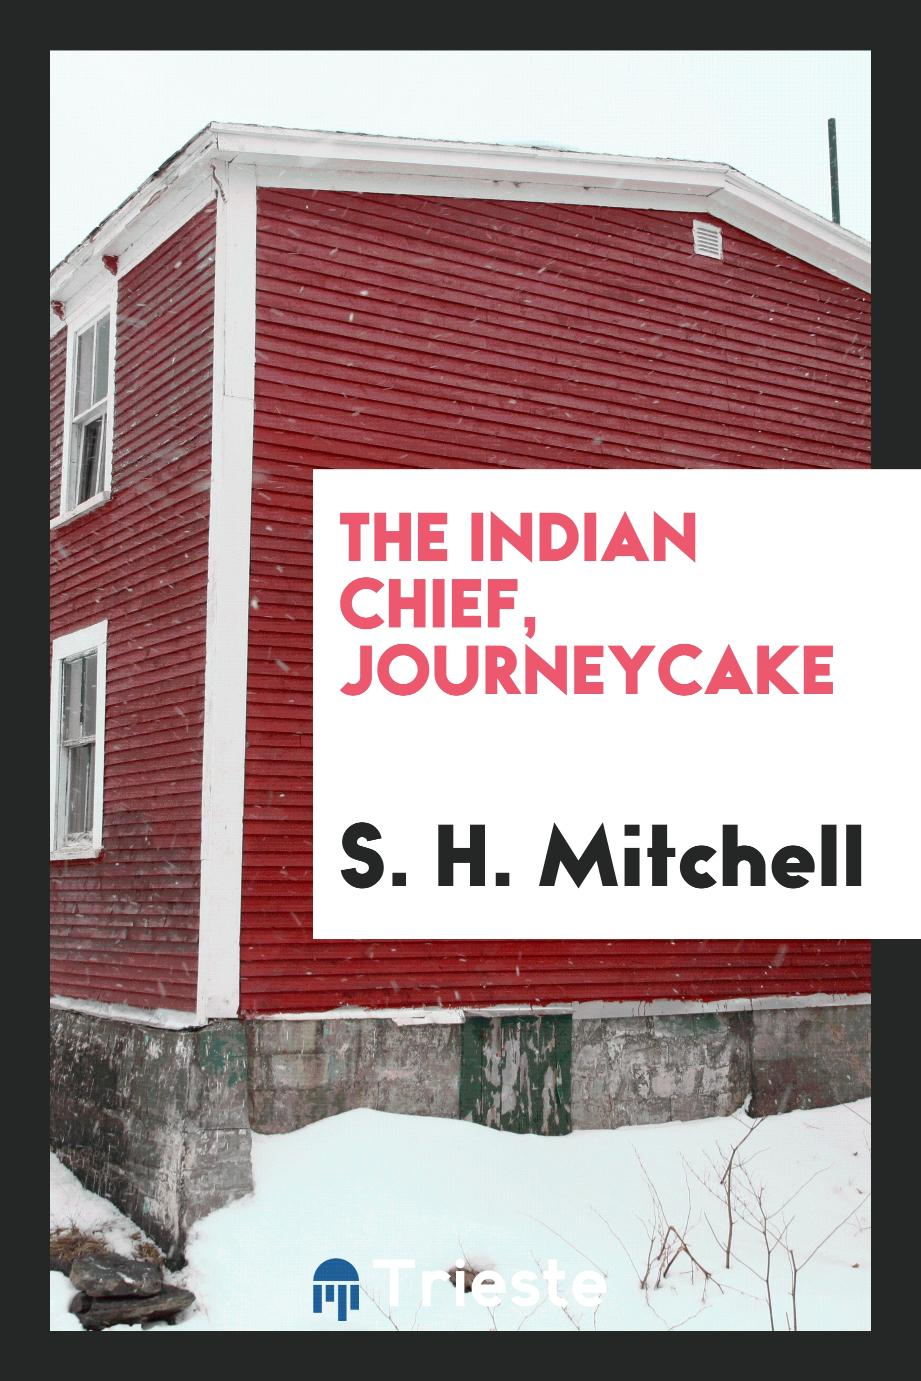 The Indian Chief, Journeycake